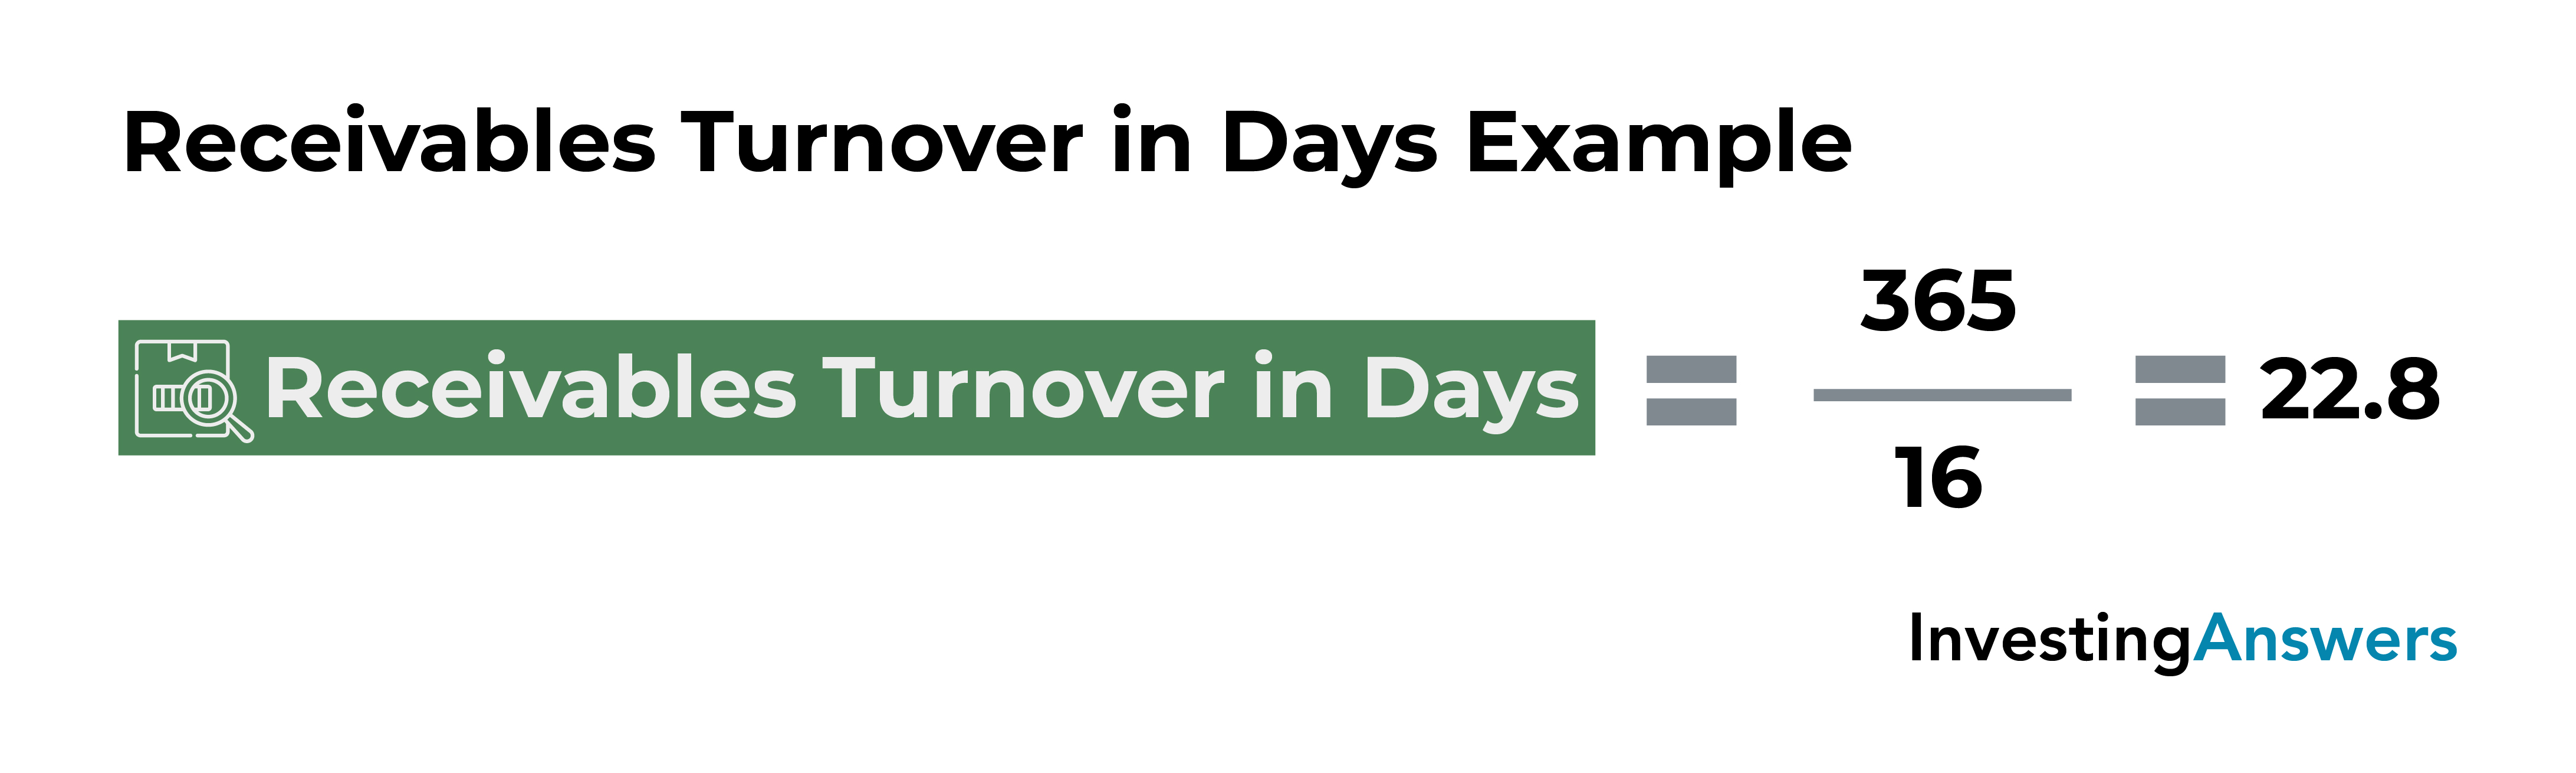 receivables turnover in days